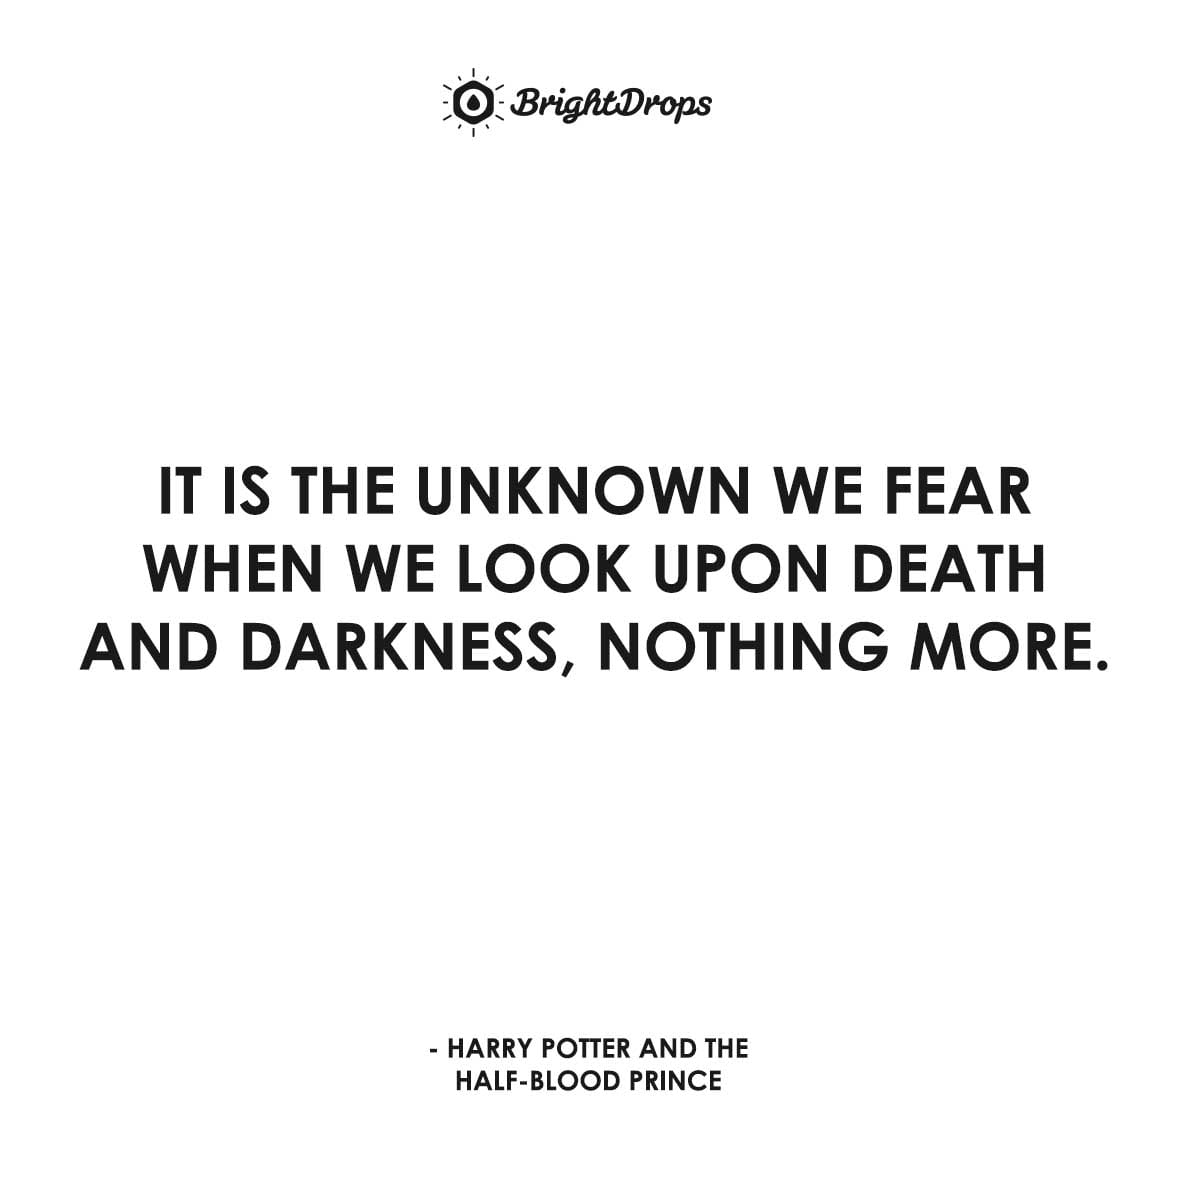 It is the unknown we fear when we look upon death and darkness, nothing more. - Harry Potter and the Half-Blood Prince